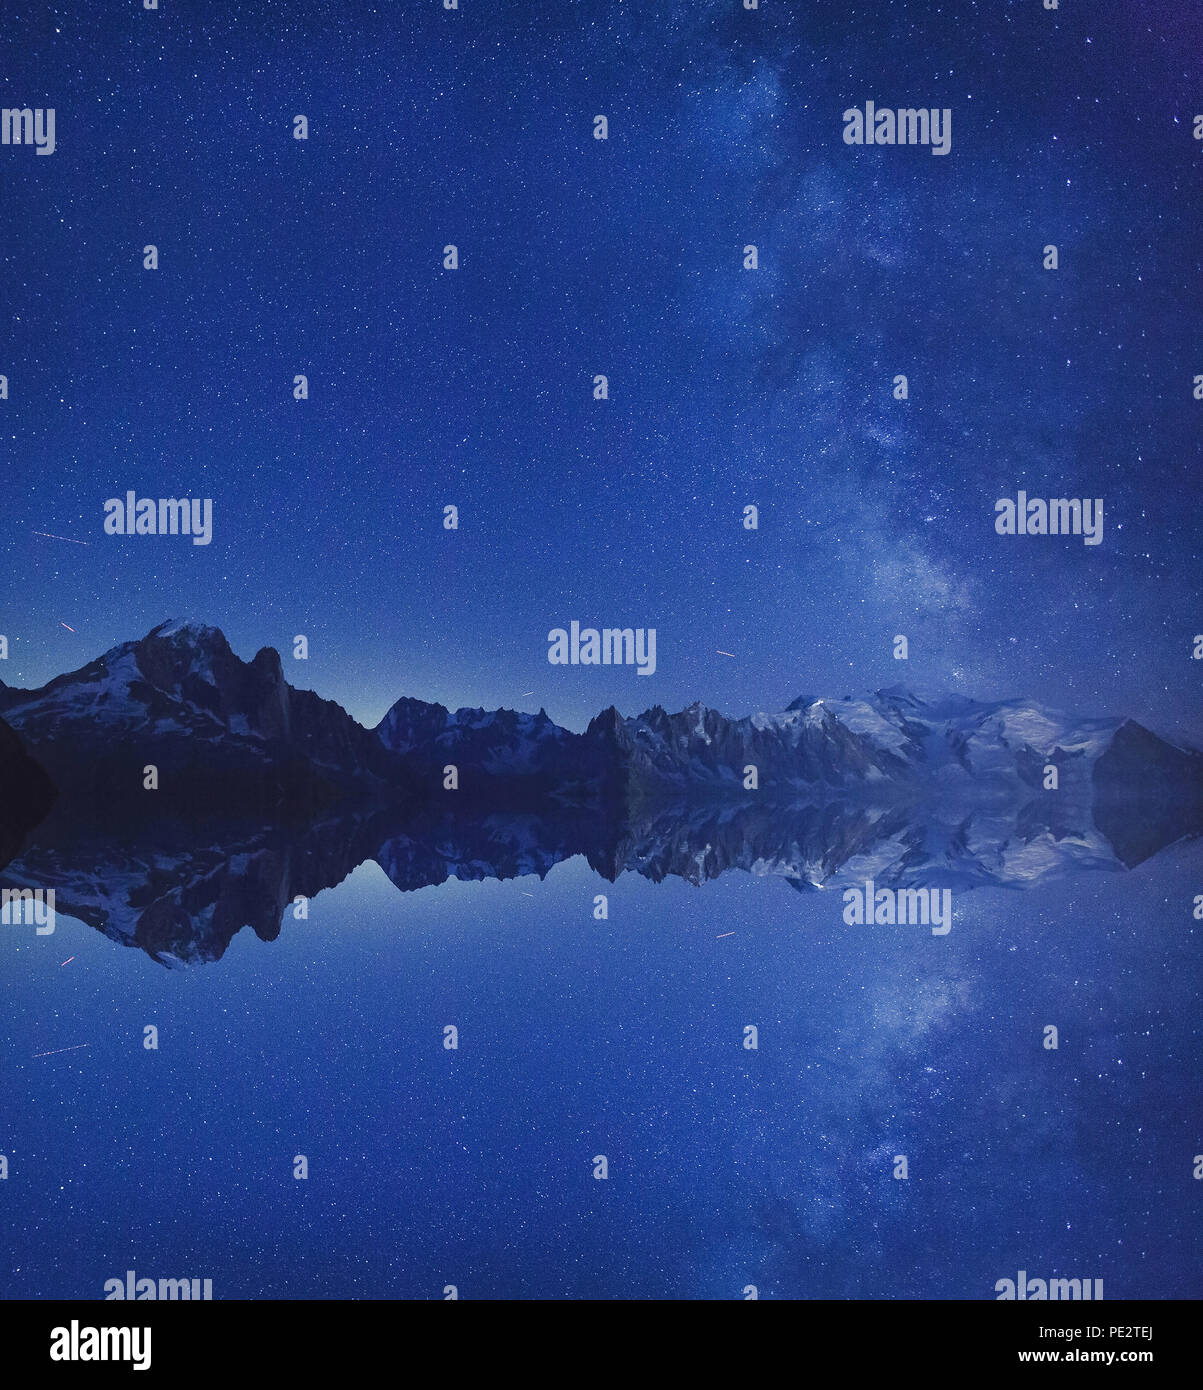 beautiful inspirational landscape, night stars and milky way over Alps mountains outdoor with reflection and copyspace, nature background - Stock Image